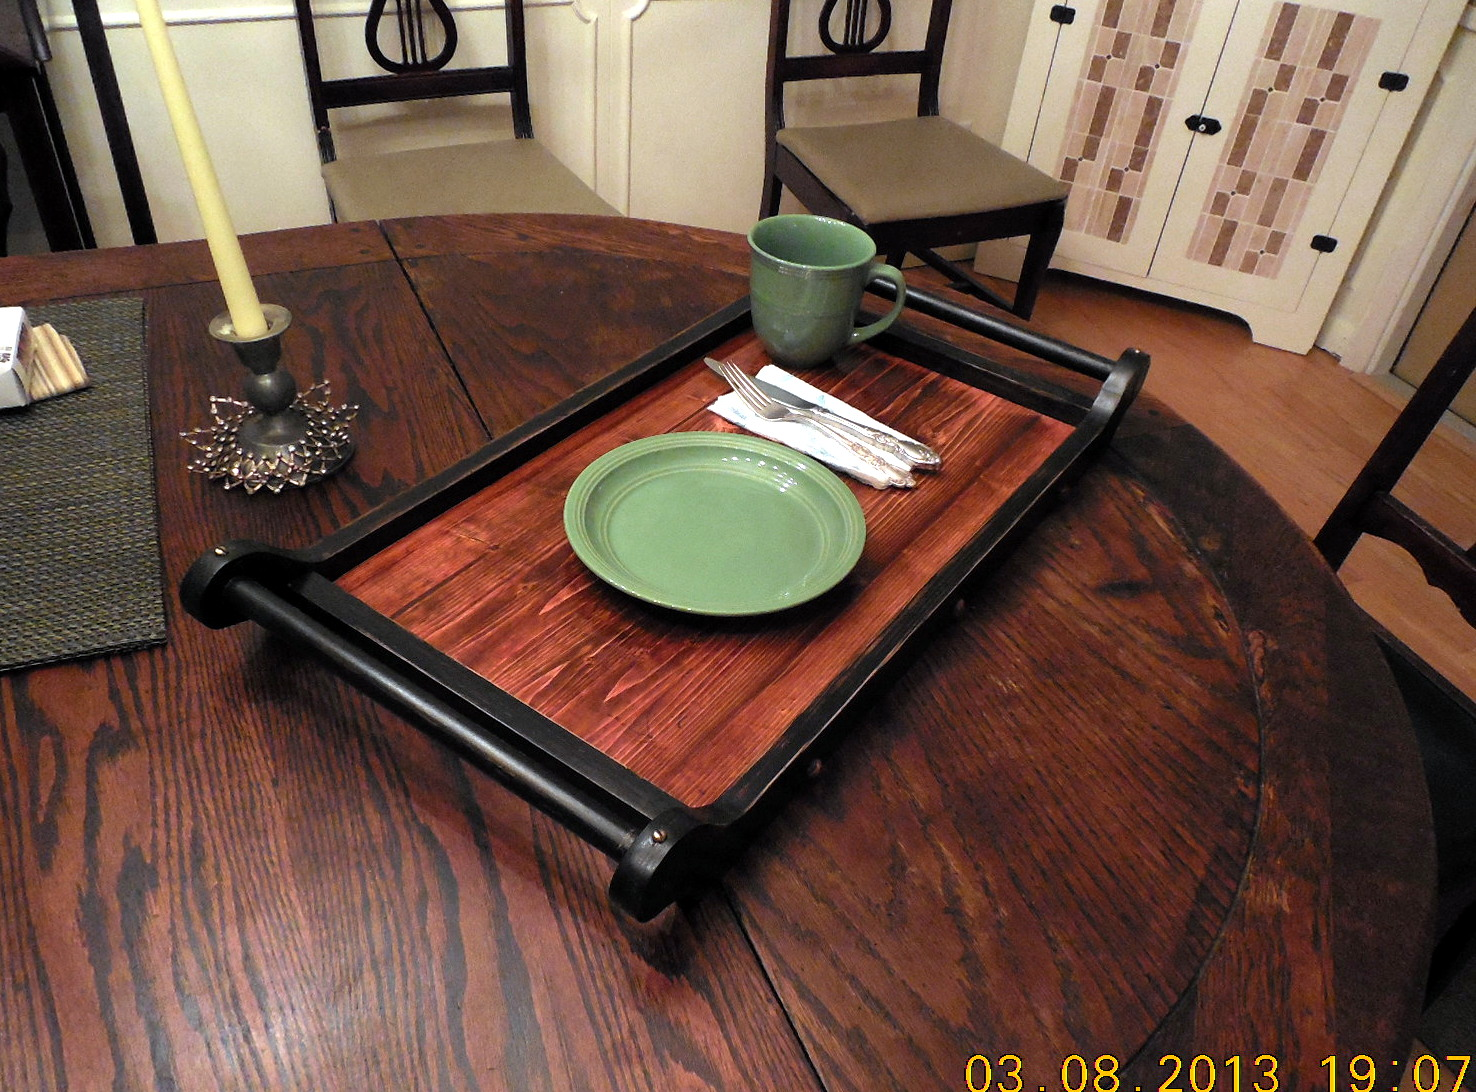 Ana white a really nice serving tray diy projects a really nice serving tray solutioingenieria Image collections